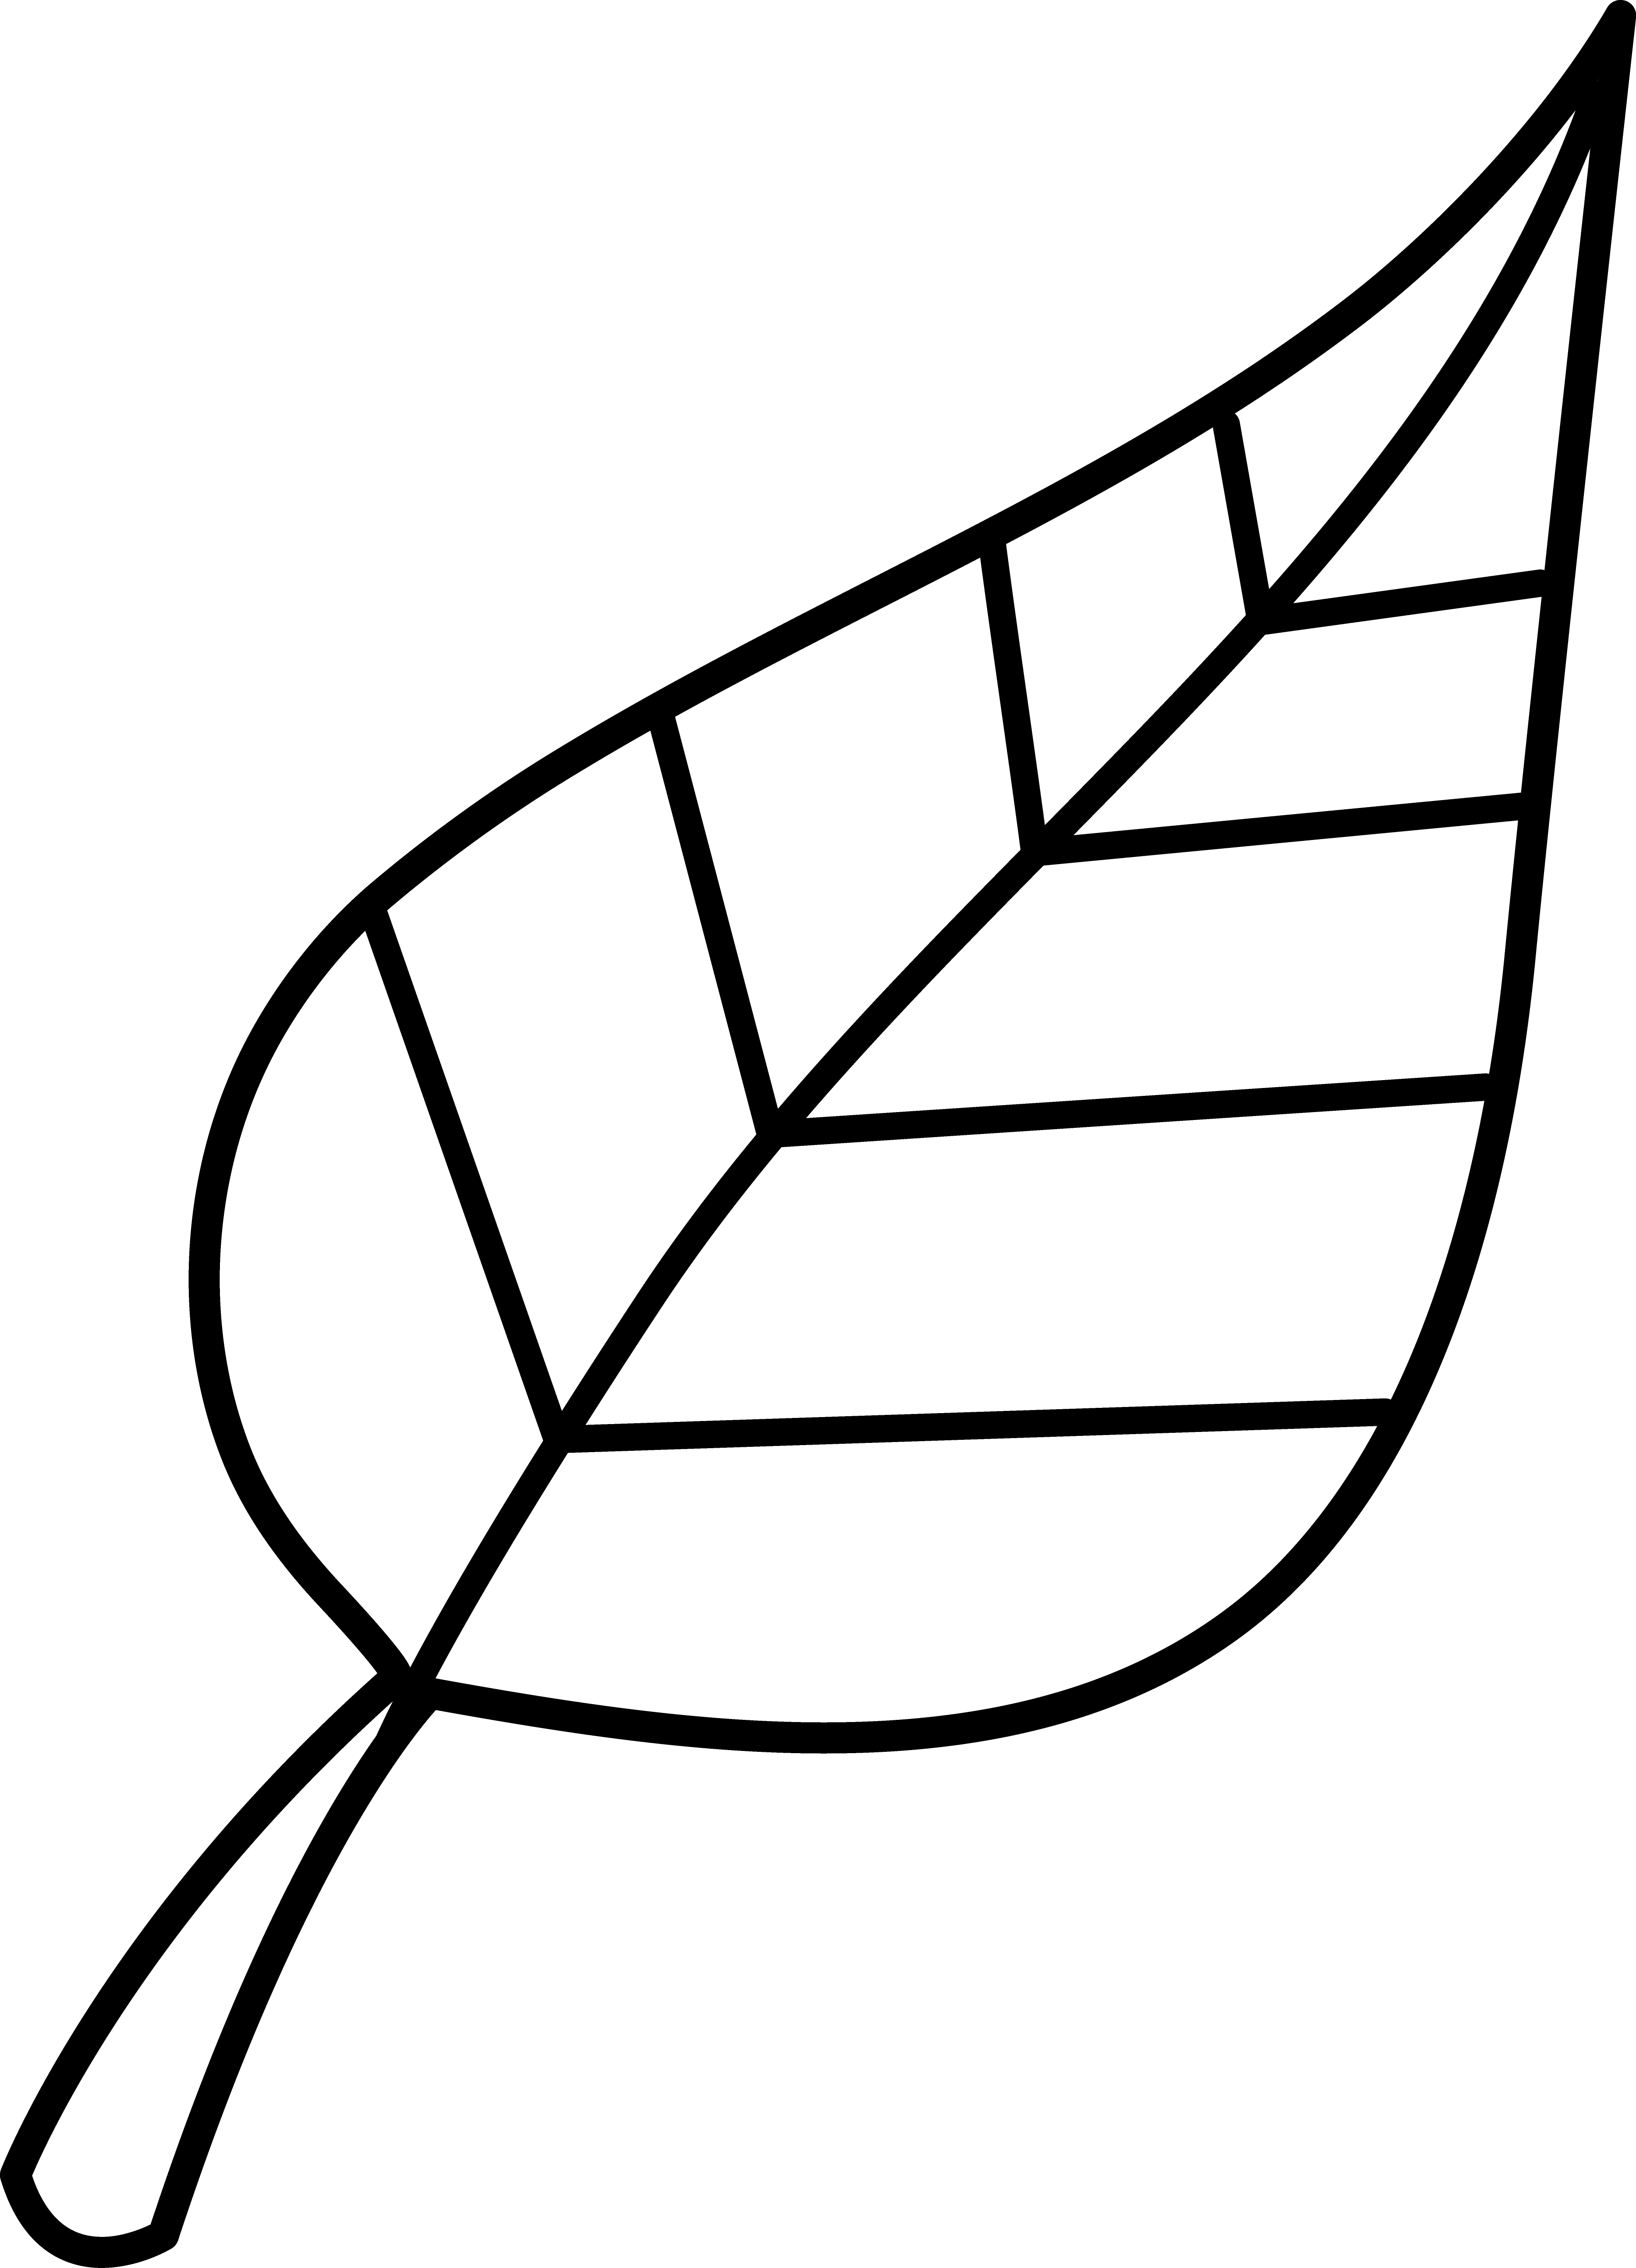 Black And White Png Leaf - Leaf Images Black And White Group with 48+ items